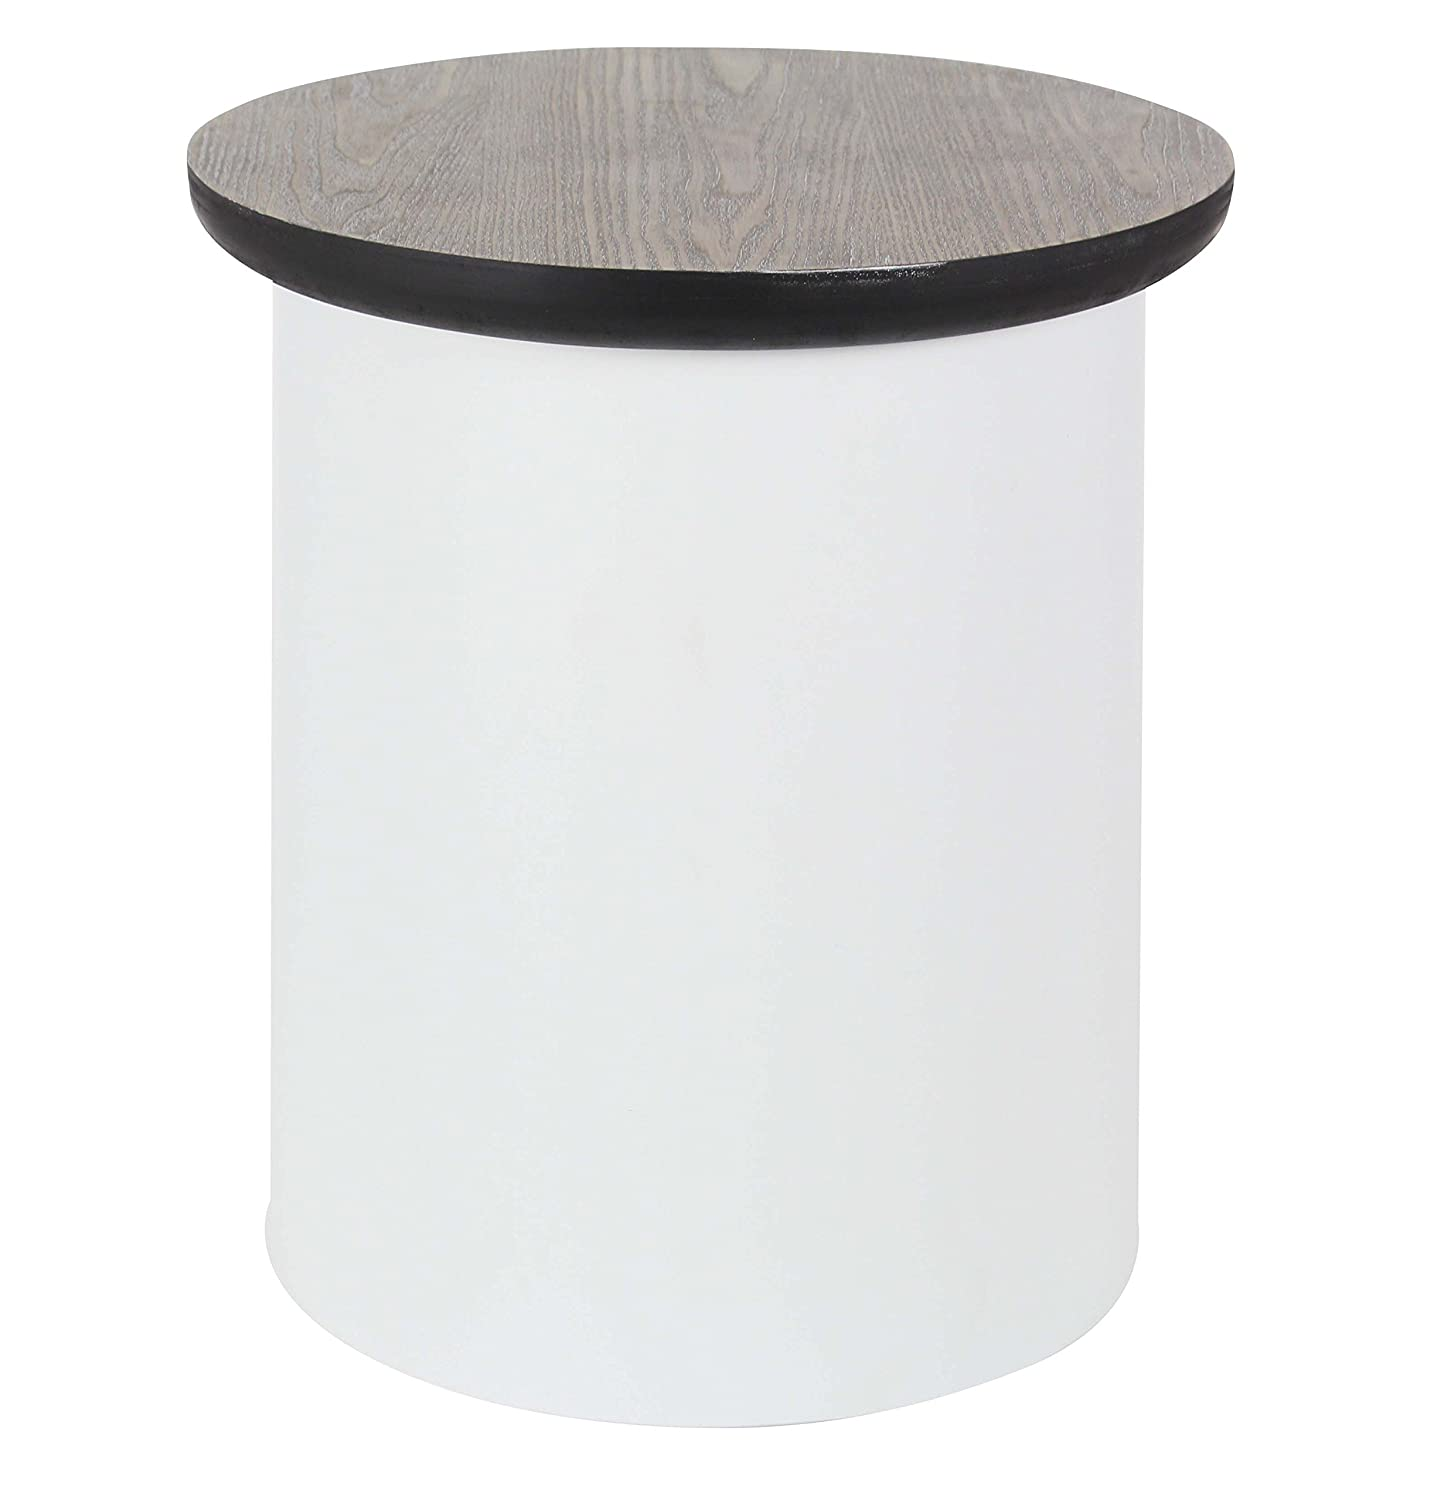 Deco 79 Metal and Wood Table, 18